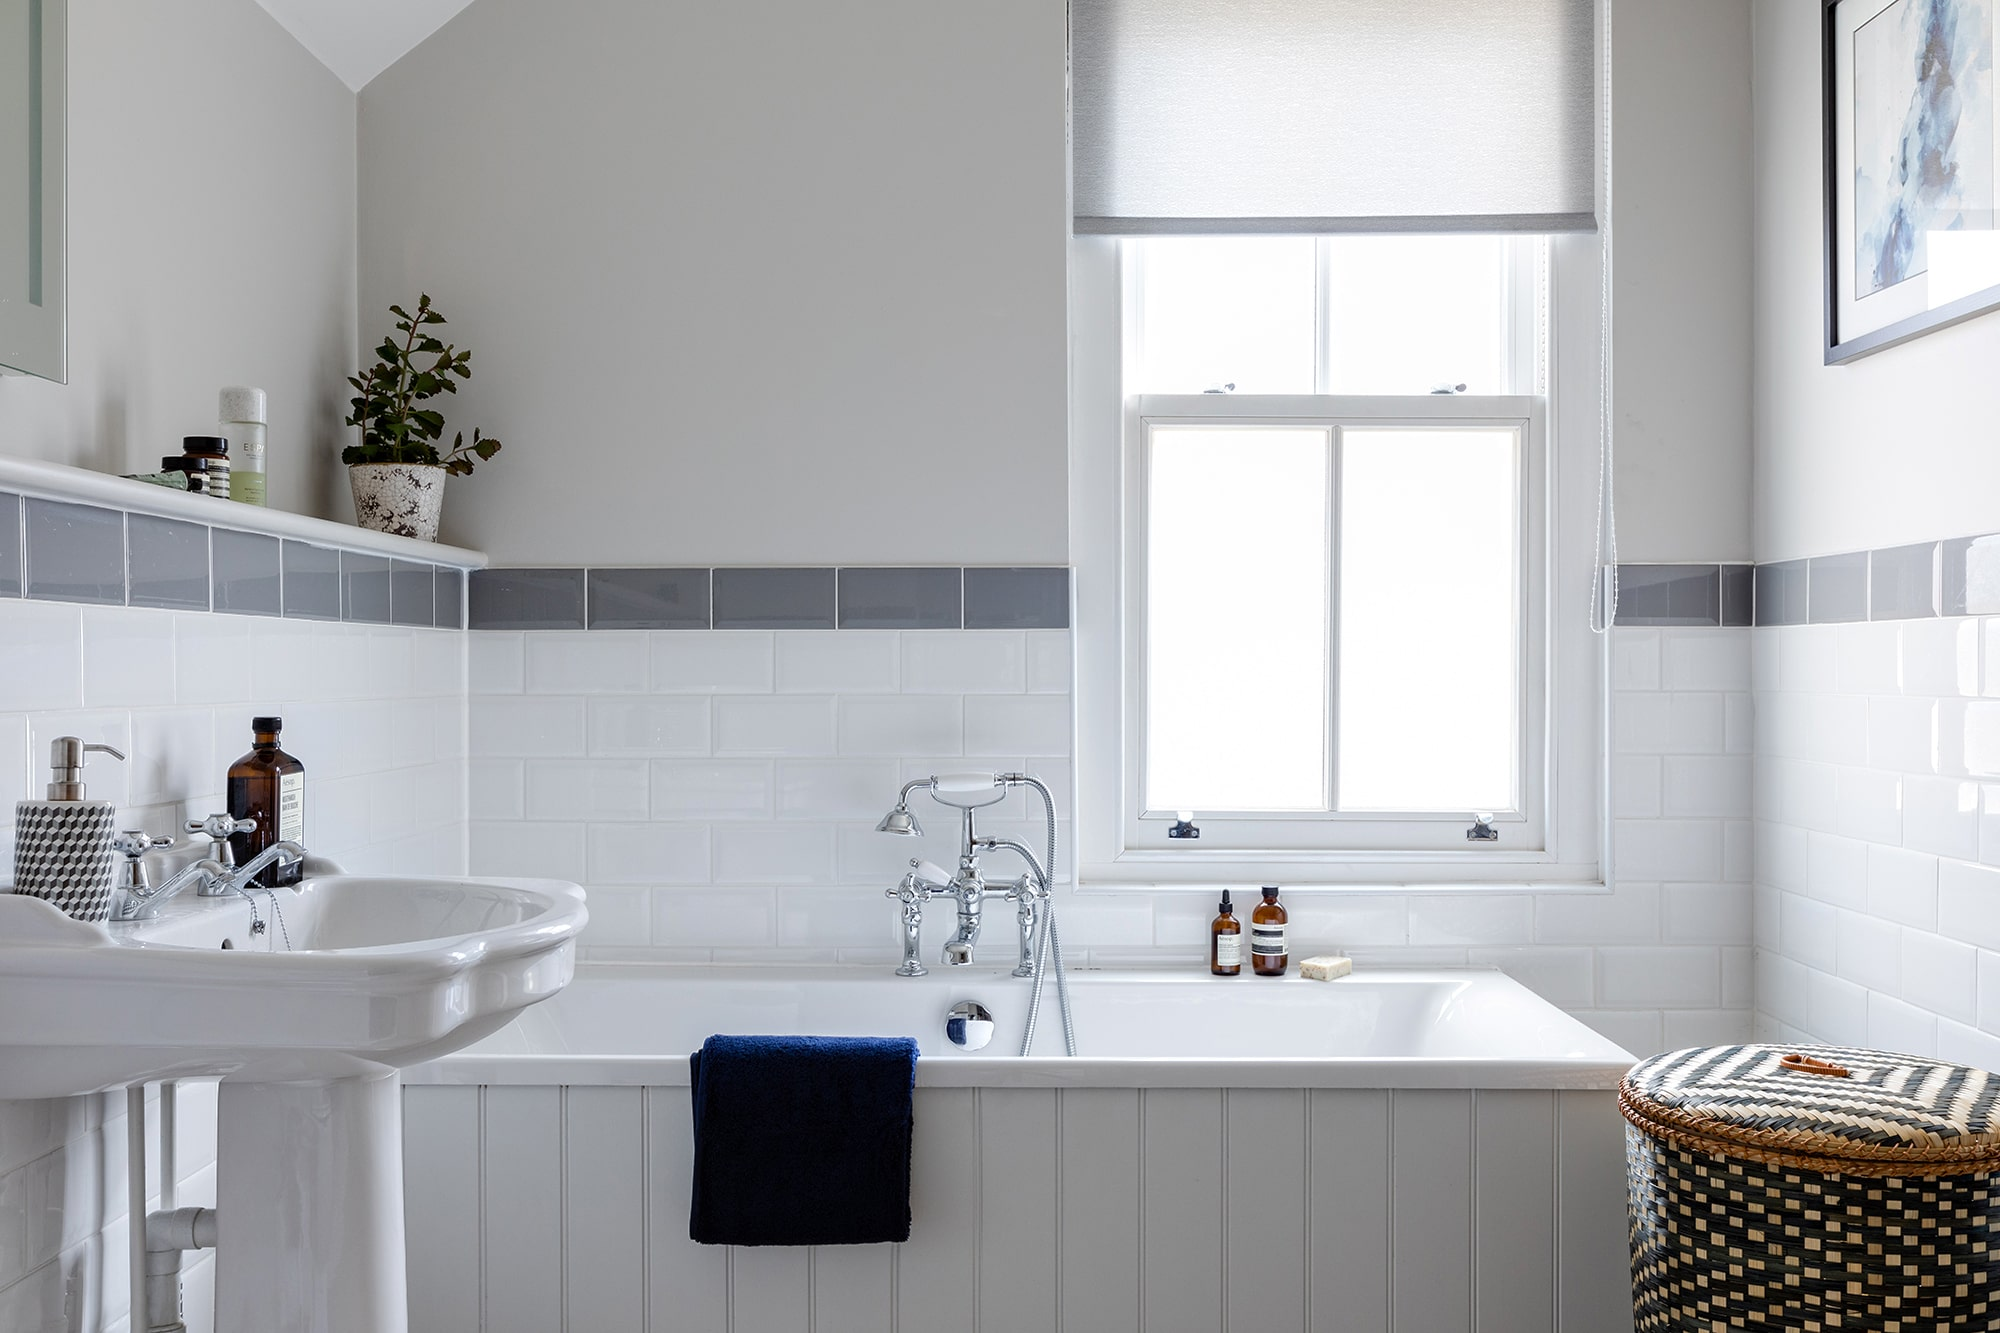 interior design photo of a bathroom with a window: bath tub and a sink